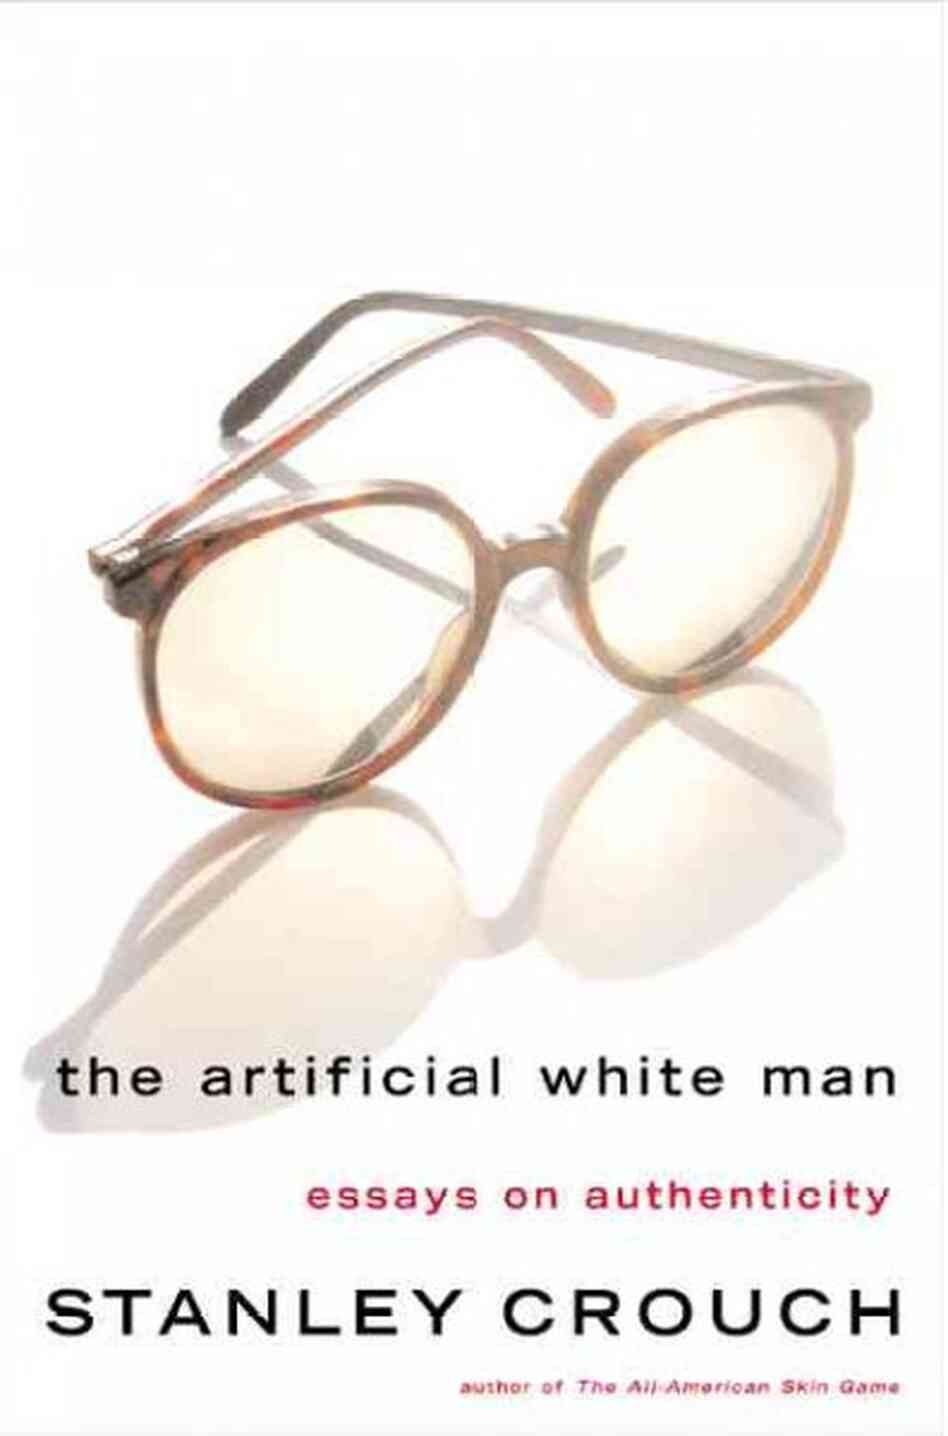 The Artificial White Man